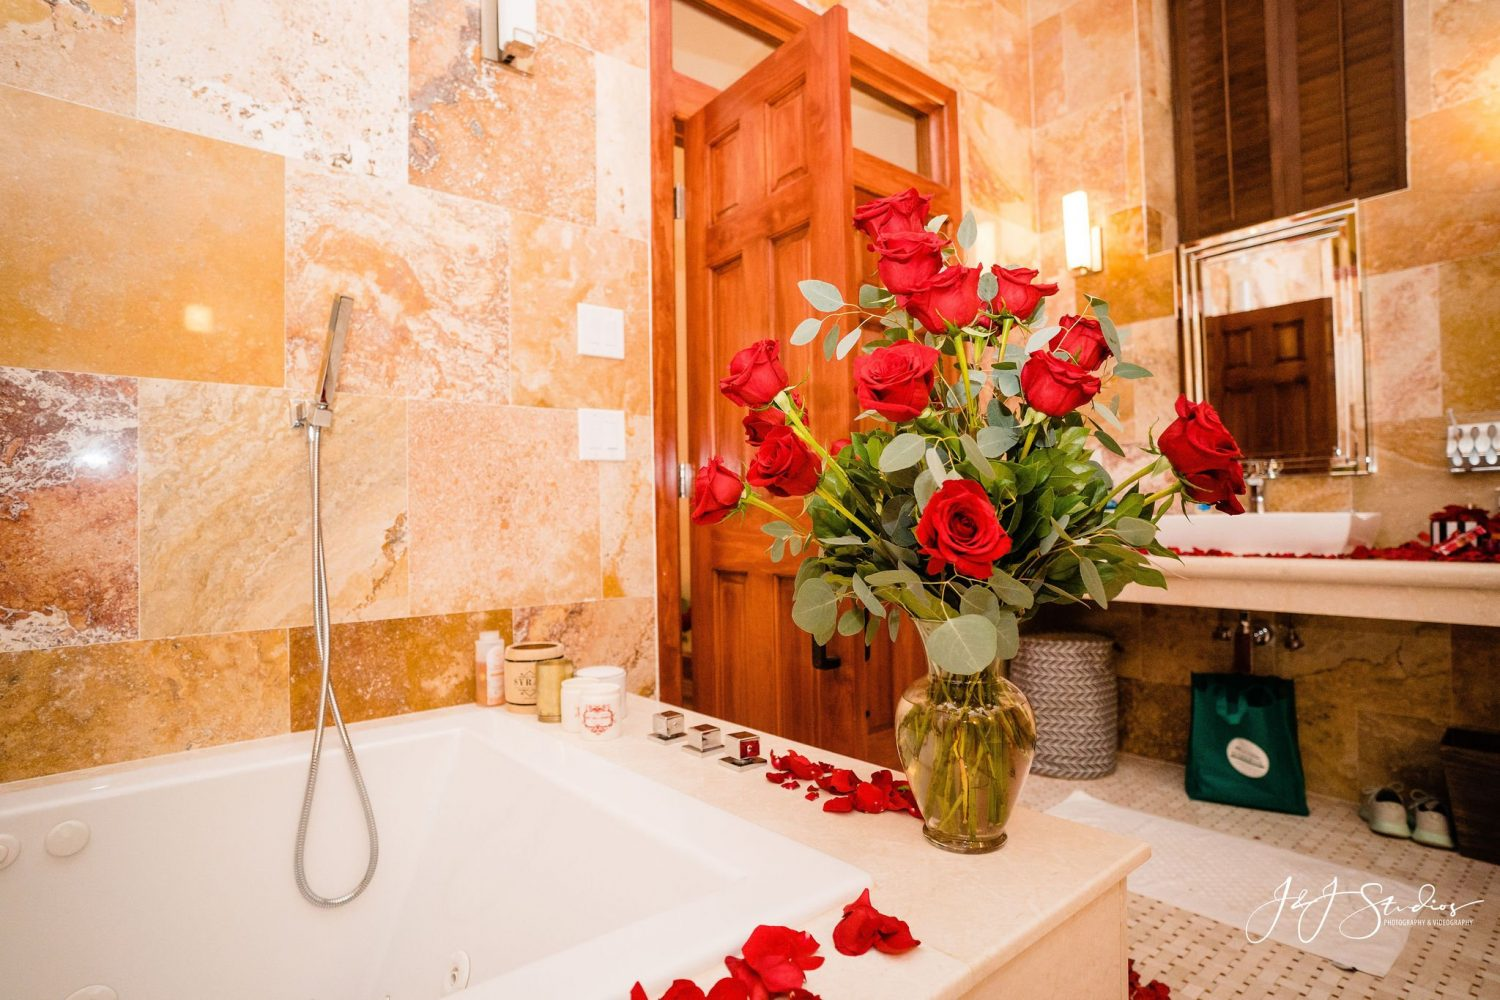 roses and rose petals in shower and bathtub